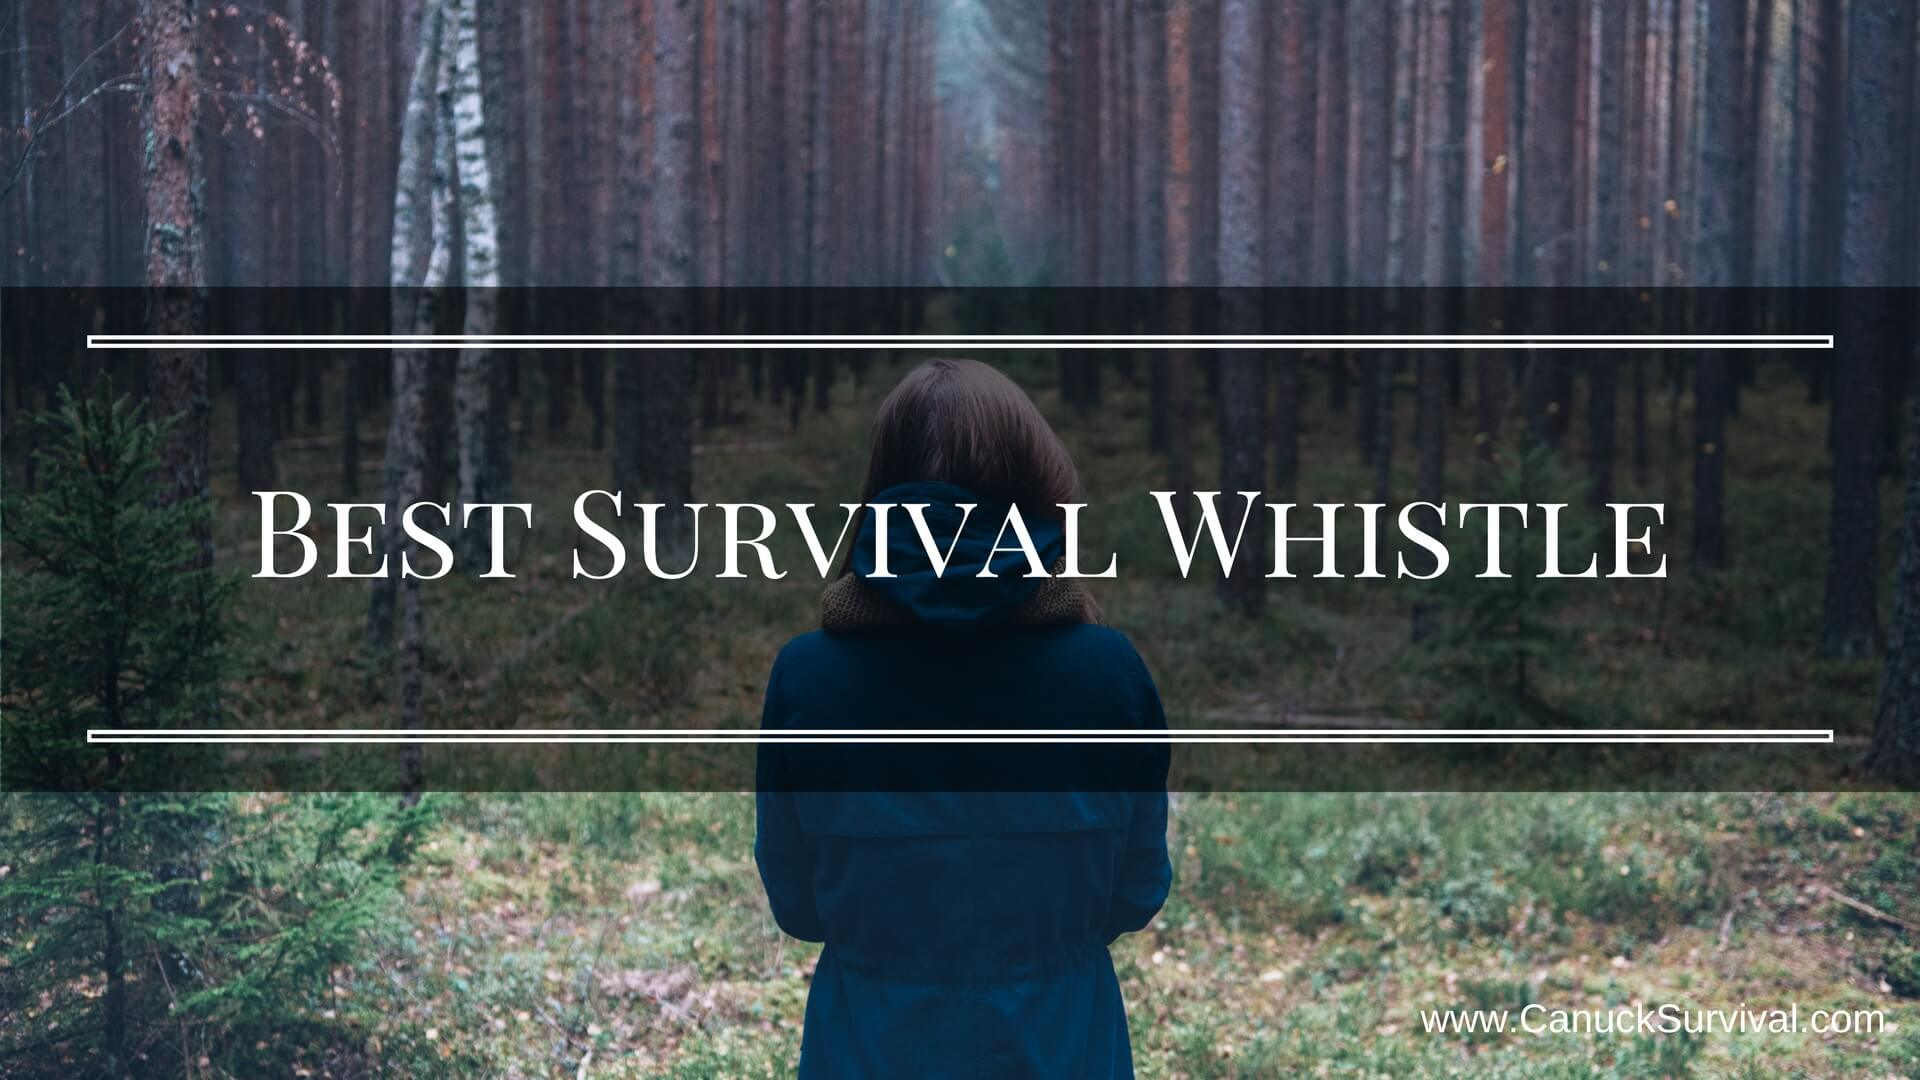 Best Survival Whistle